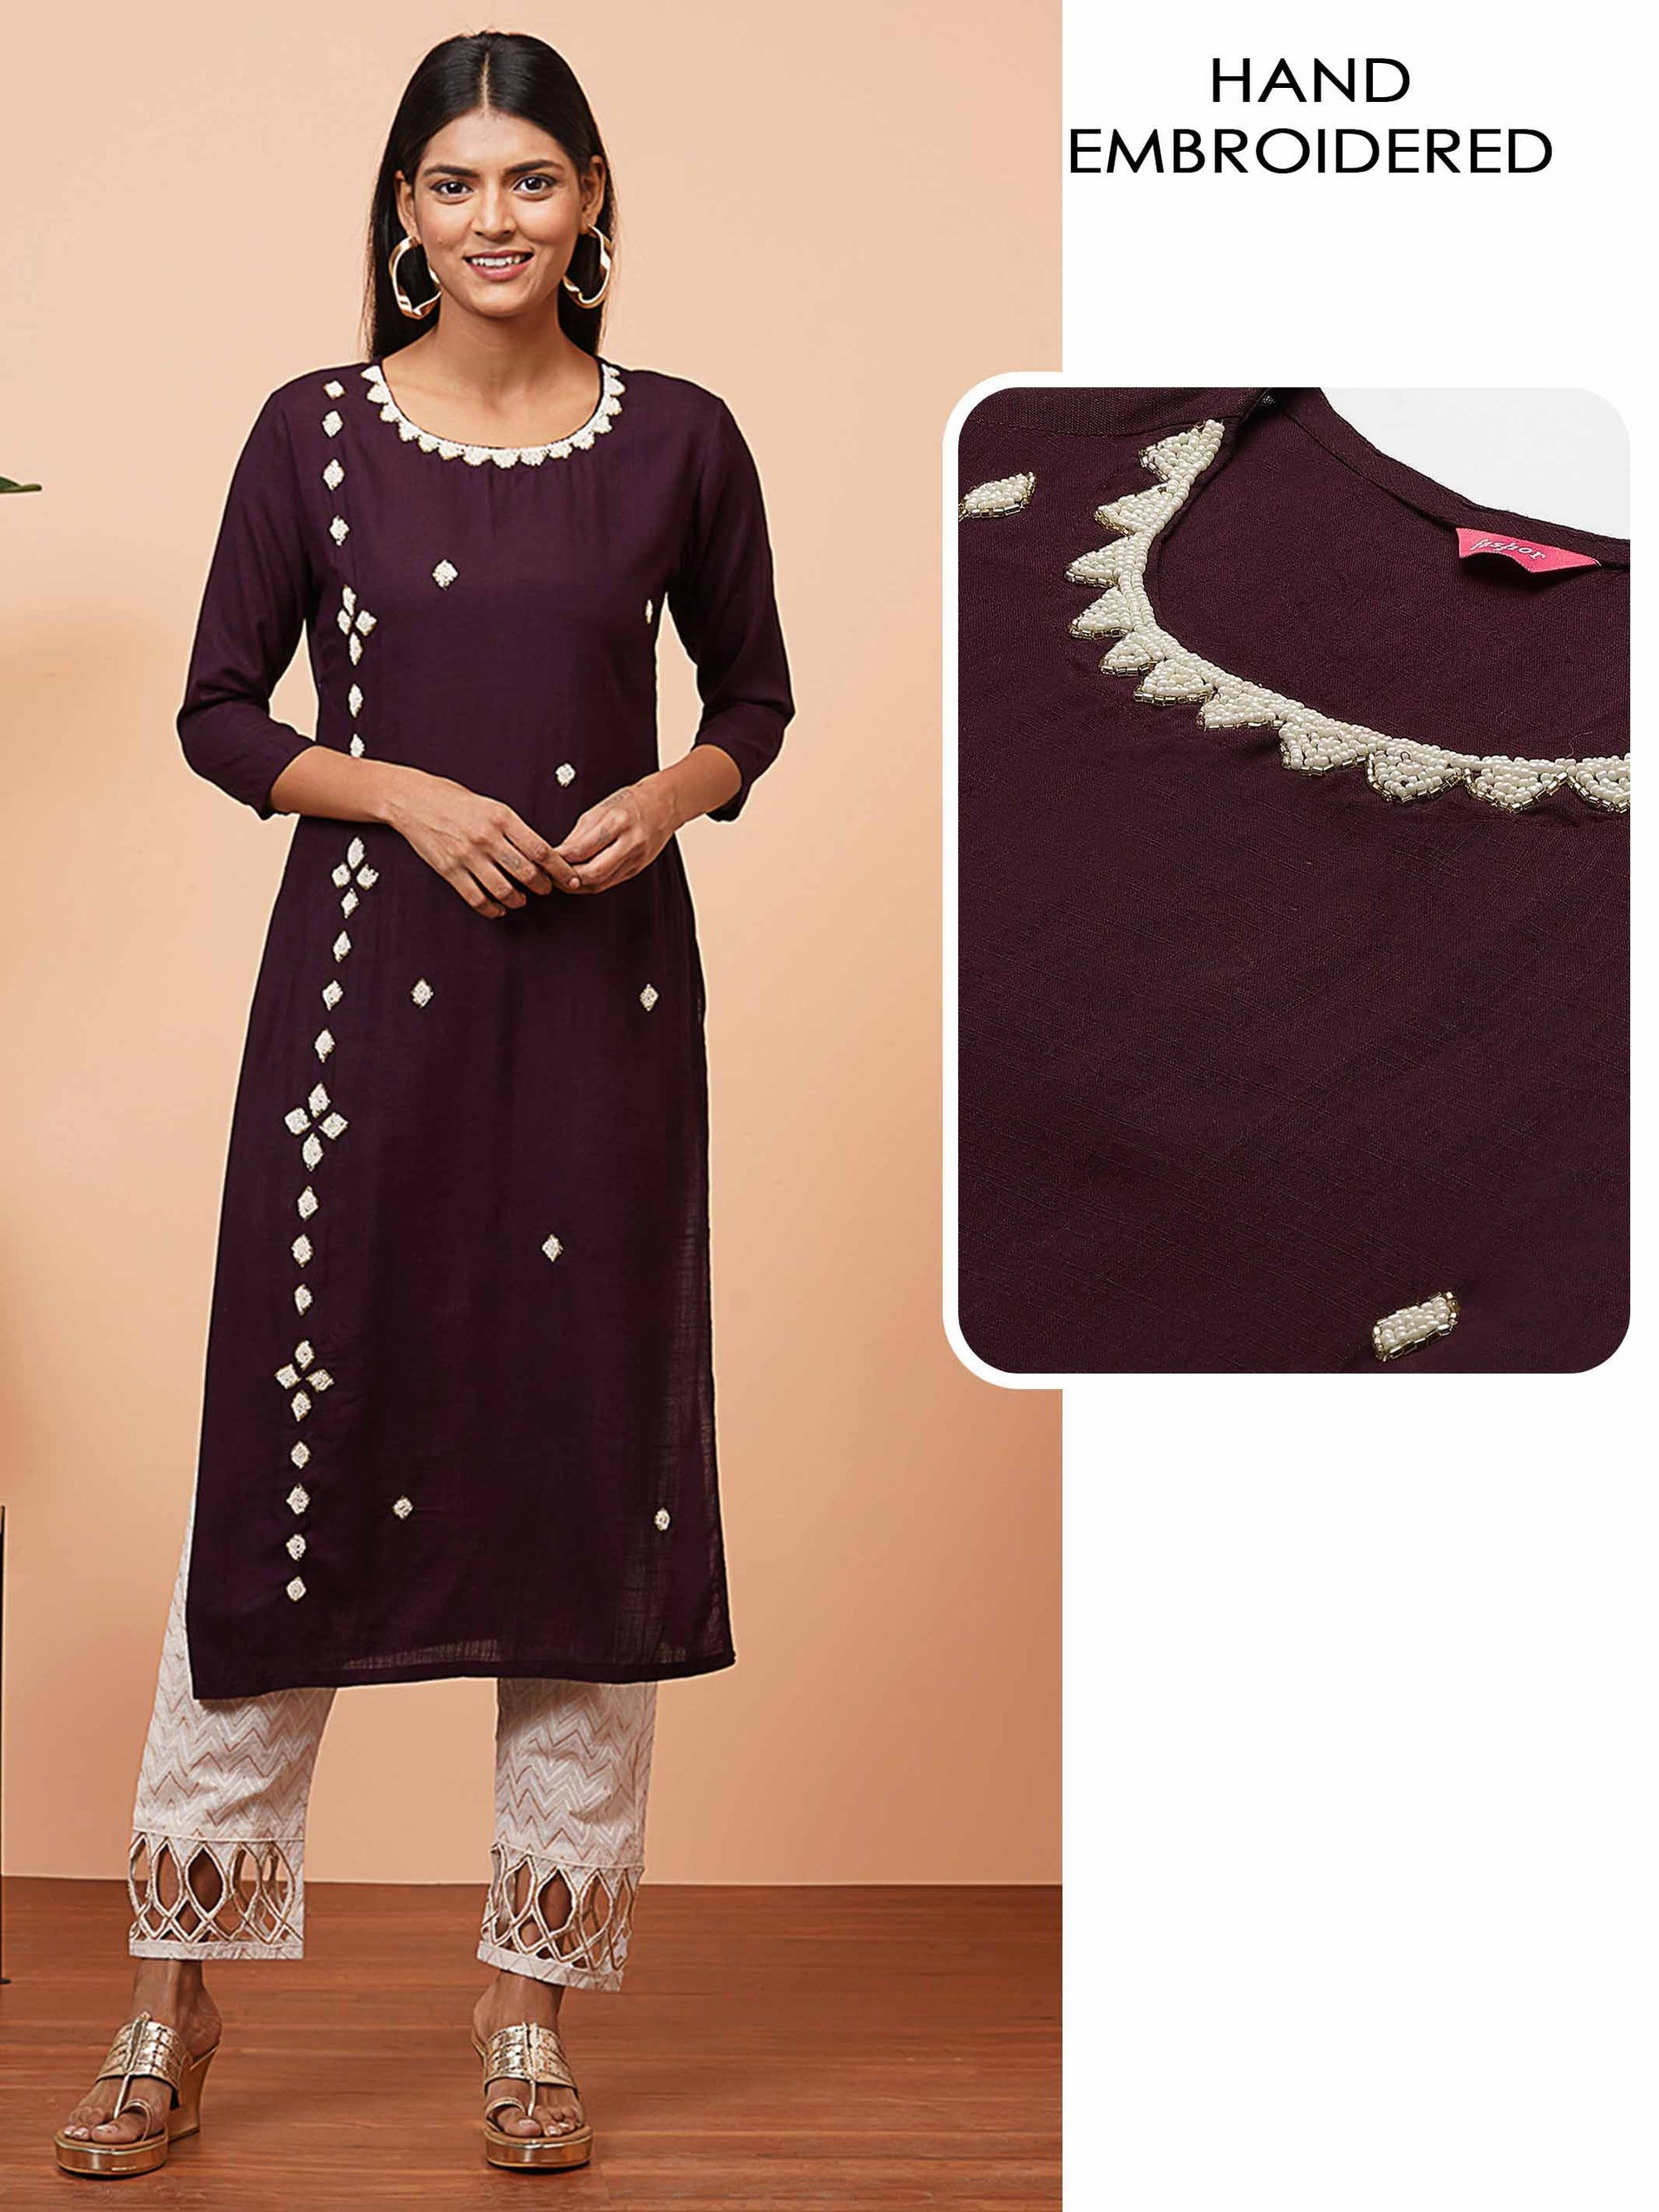 White Beads Hand Embroidered Straight Kurta - Plum